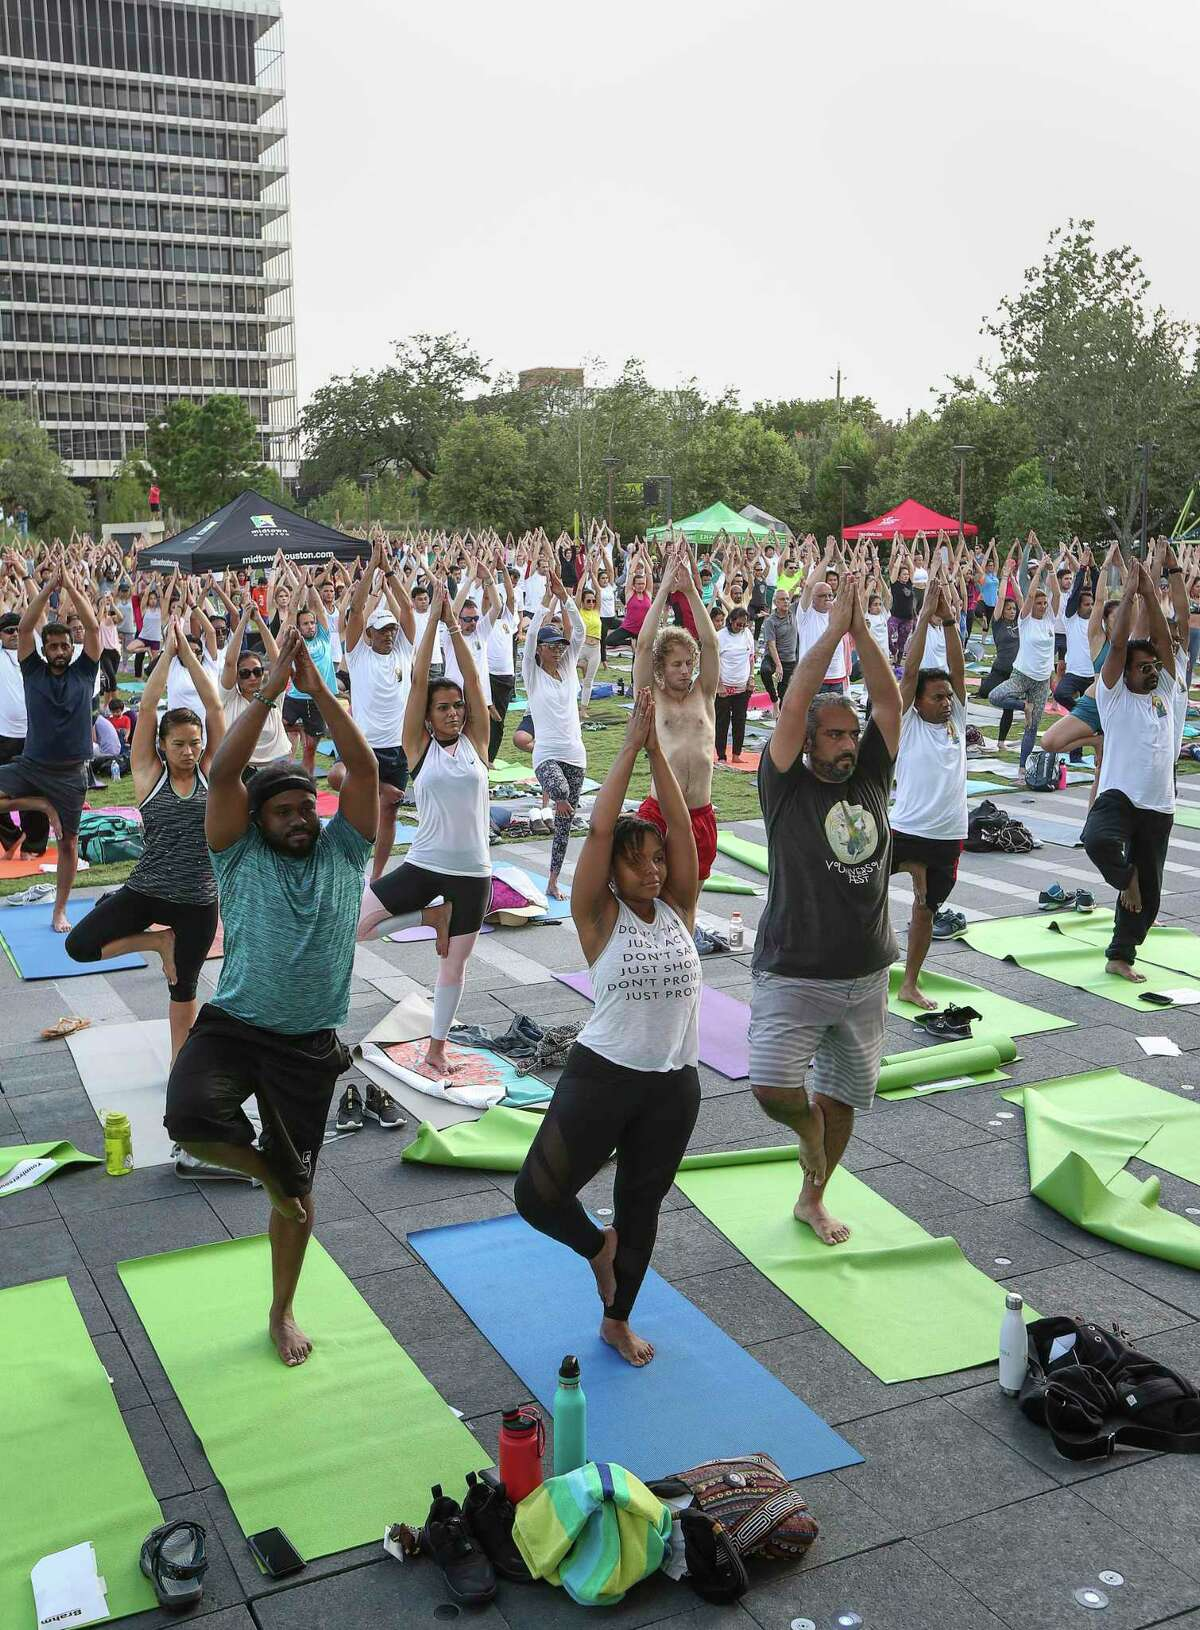 People practice yoga during an International Day of Yoga event at Midtown Park on Friday, June 21, 2019, in Houston.